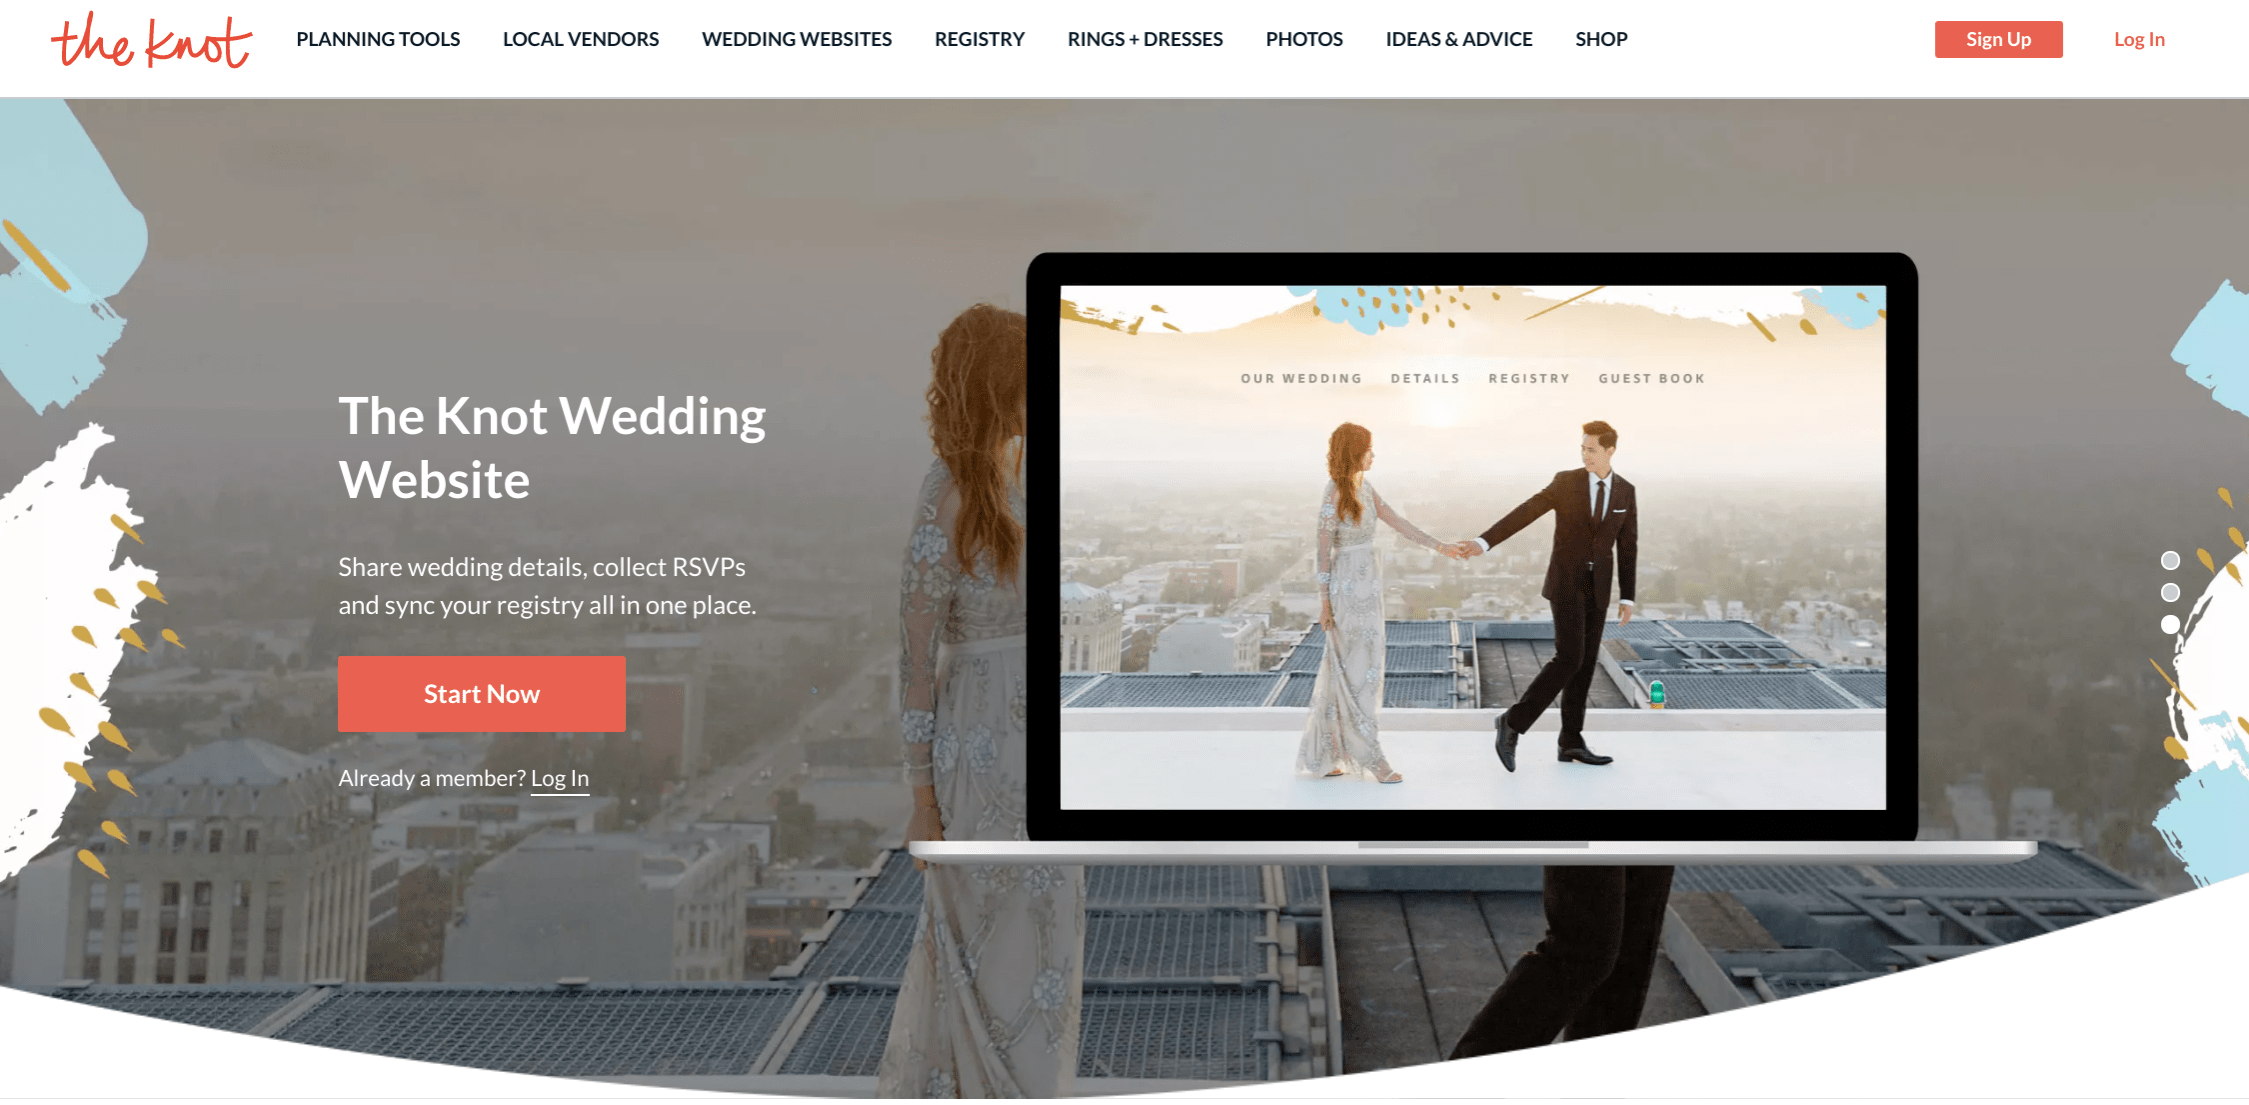 The Knot Best Wedding Website Builders For Couples The Waterlily Bride In 2020 Wedding Website Builder Wedding Website The Knot Wedding Website